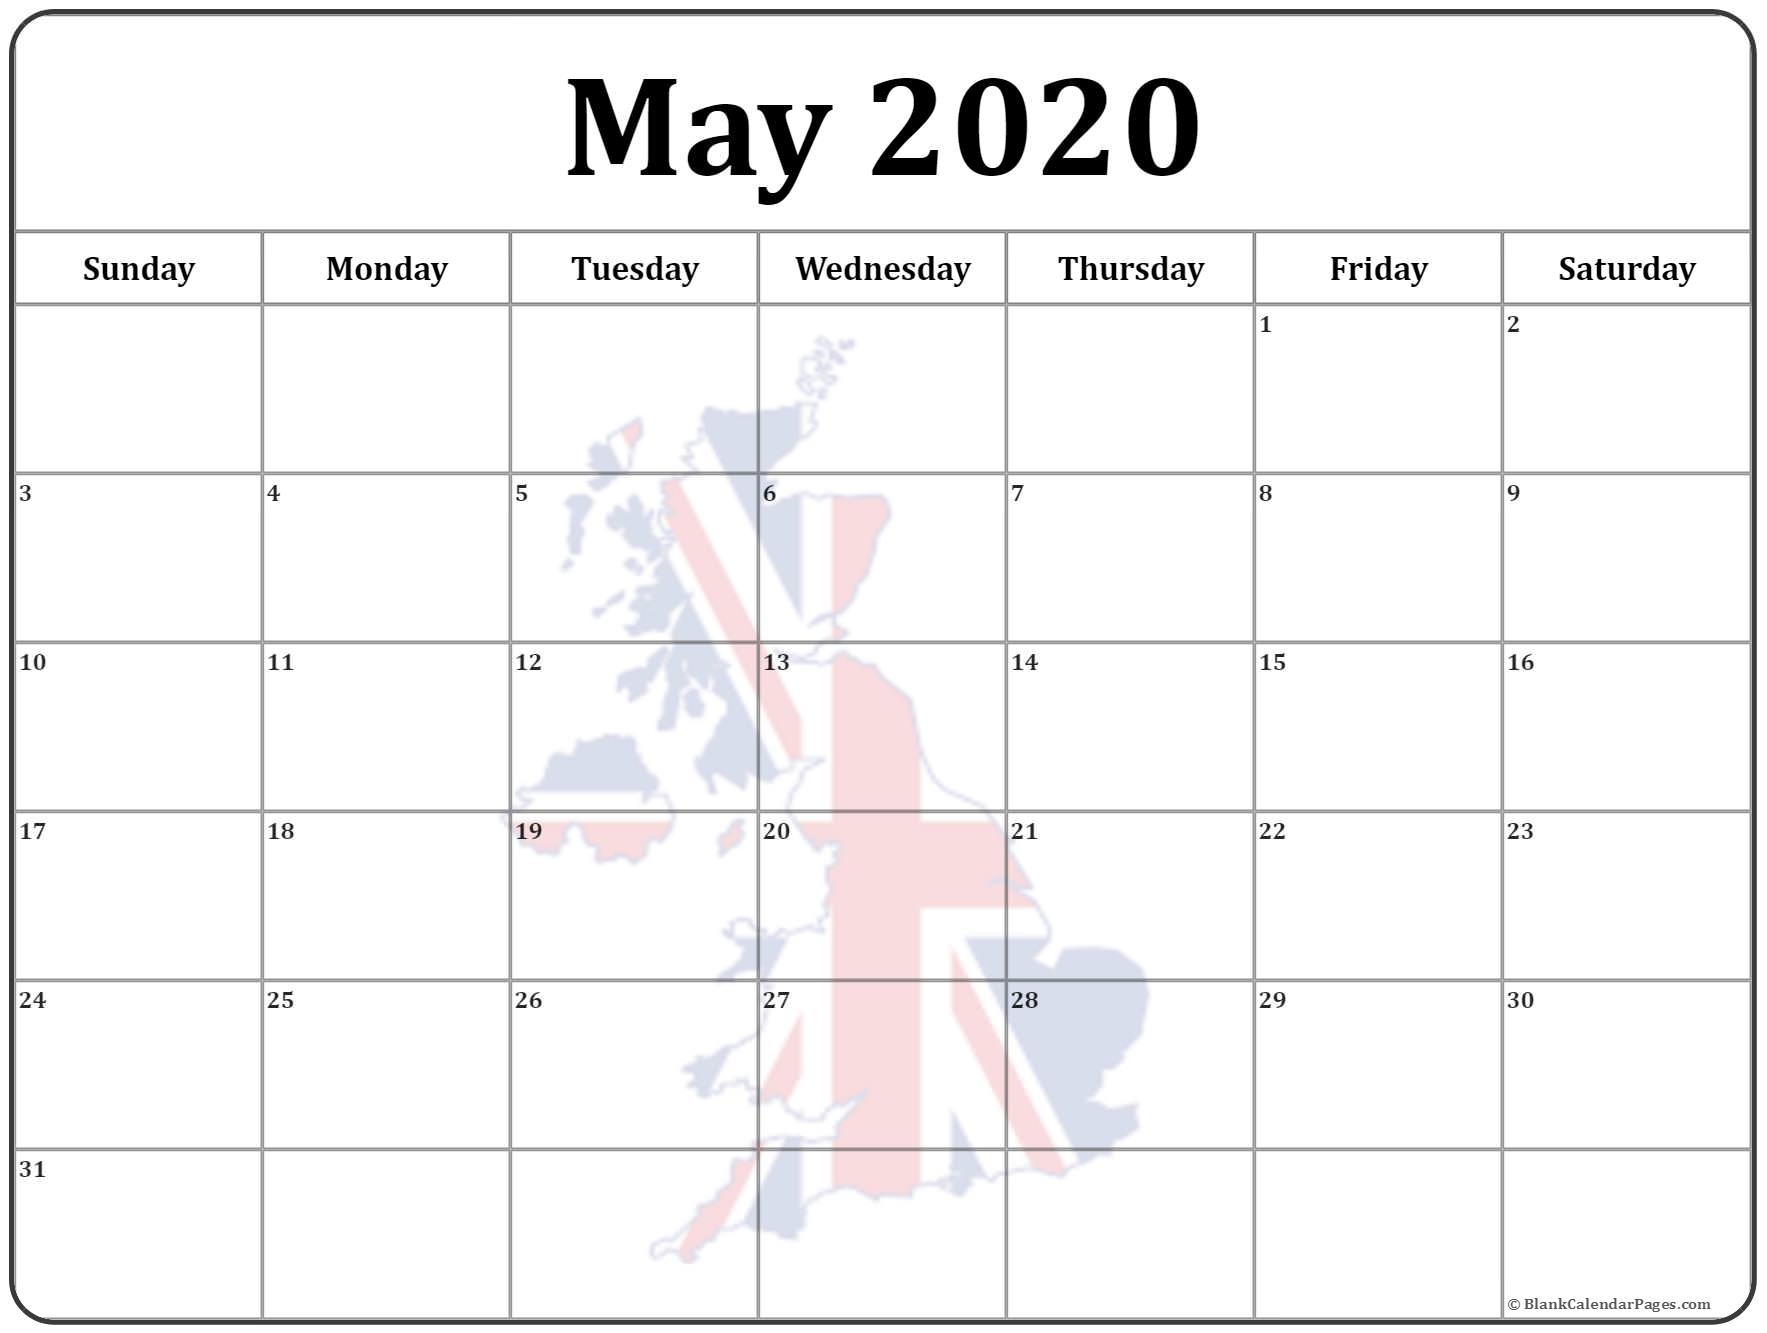 Collection Of May 2020 Photo Calendars With Image Filters. May 2020 Calendar Uk